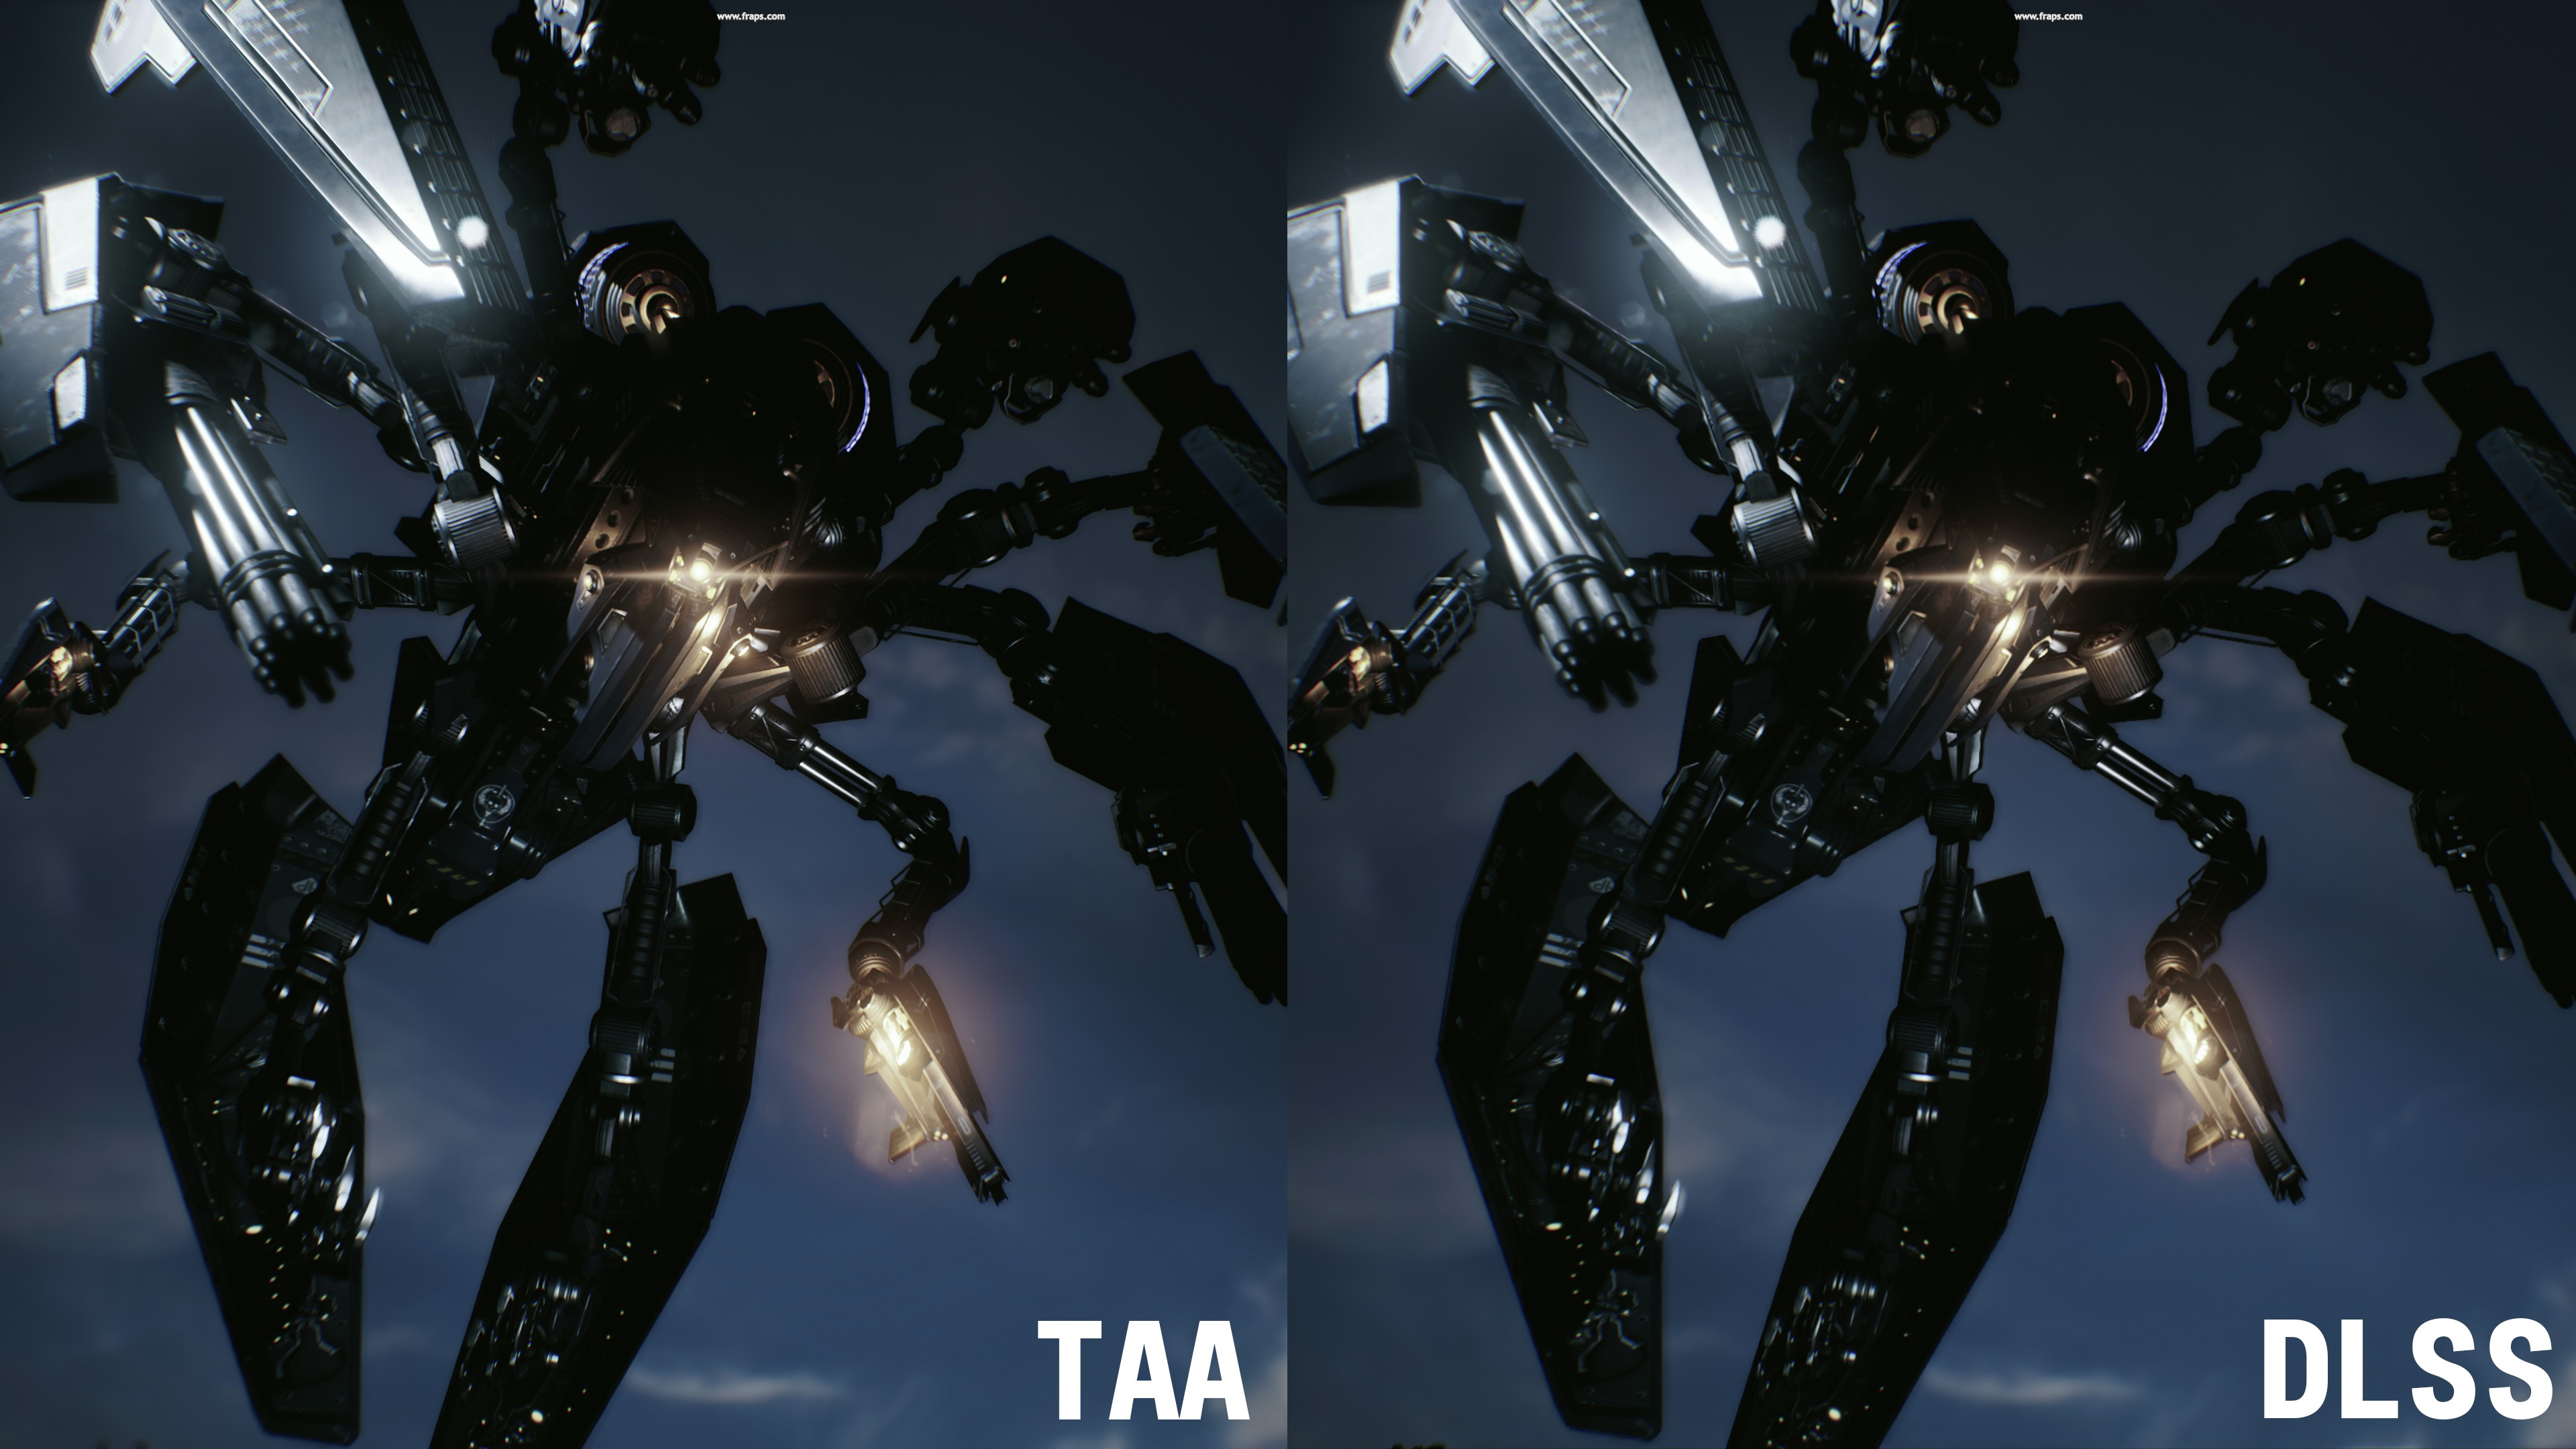 Test GeForce RTX 2080 Ti - Infiltrator TAA vs DLSS